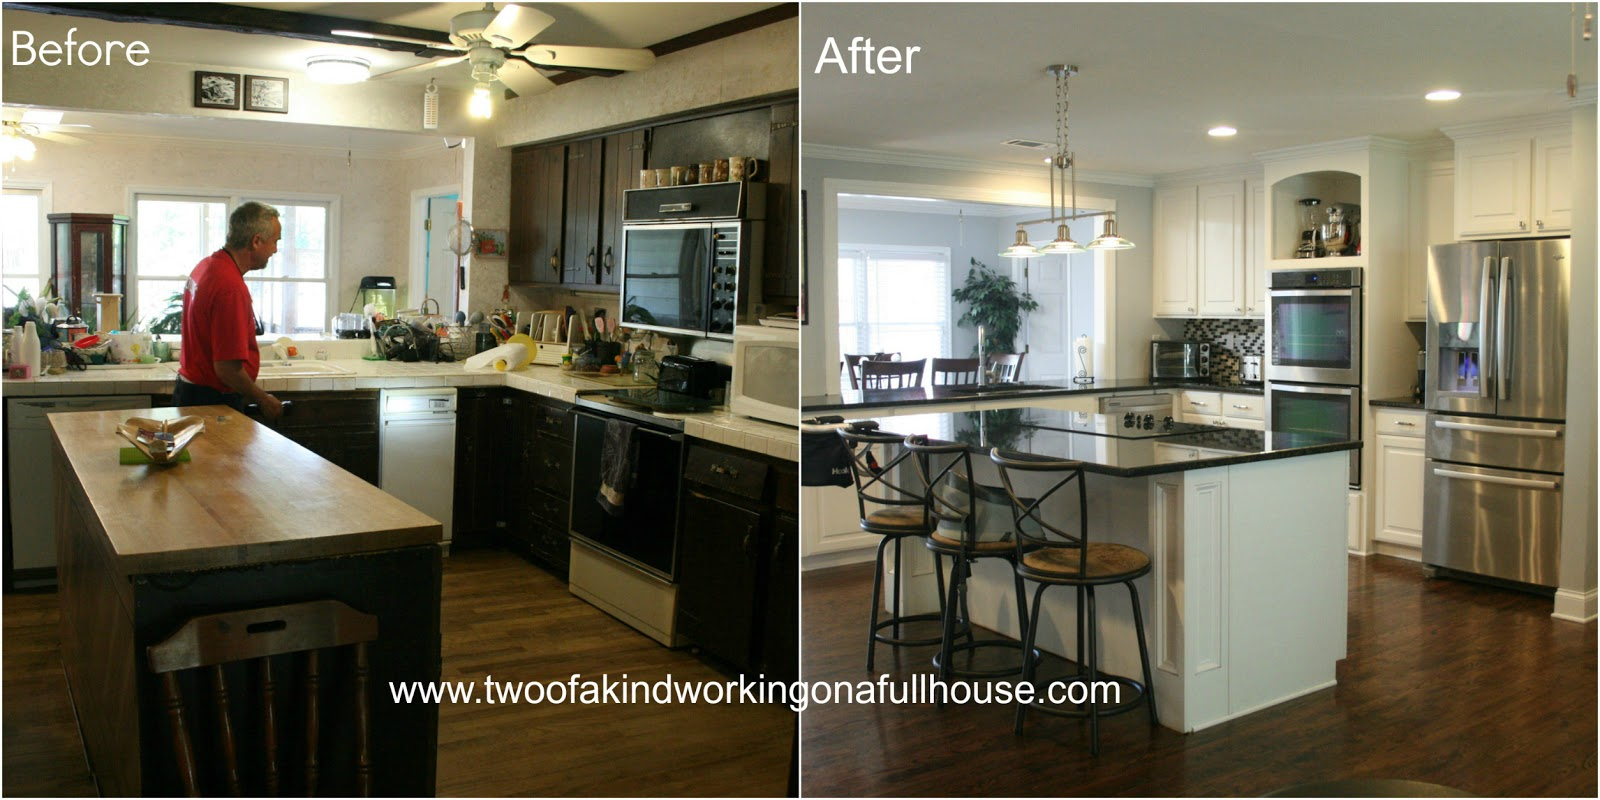 Wordless Wednesday BeforeAfter Kitchen Remodel Pictures Two - Kitchen before and after remodels